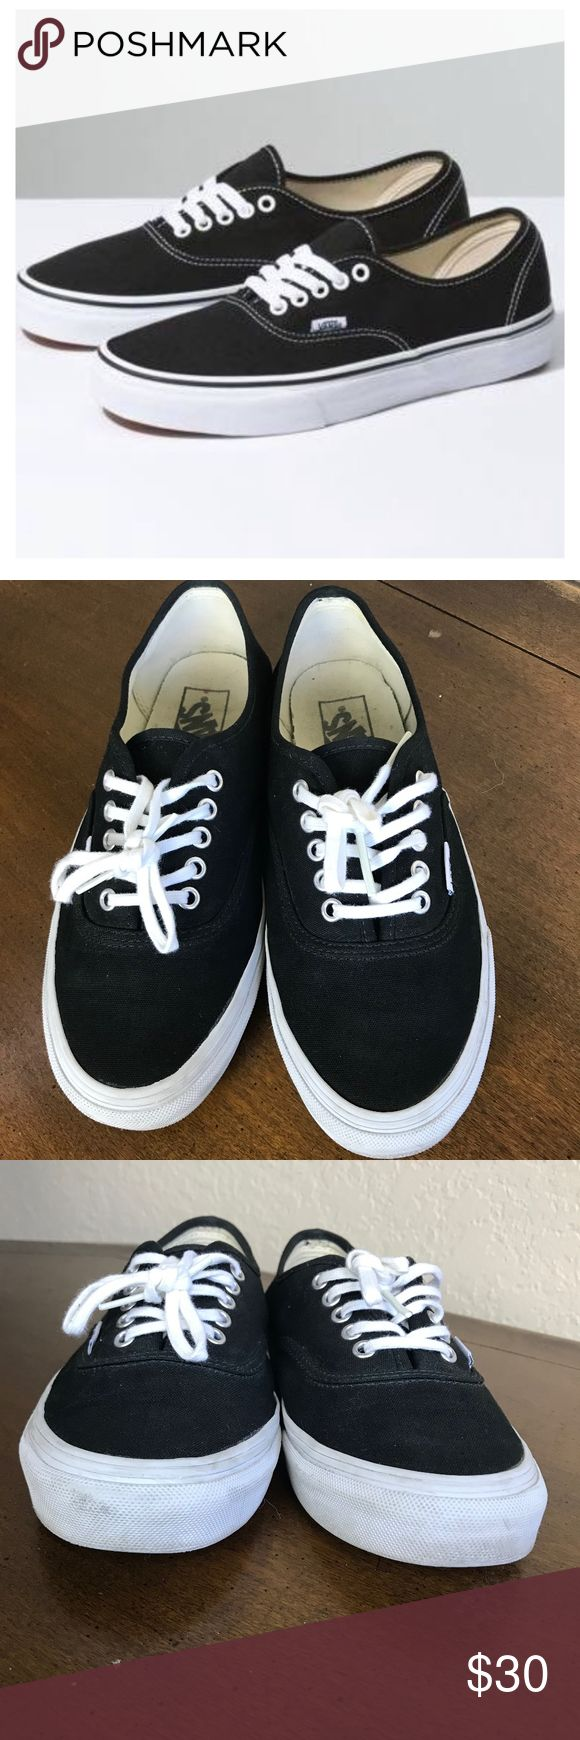 Vans Classic black and white lace up shoes Classic Vans lace up good condition, some signs of wear on white trim Perfect casual, every day shoe! Vans Shoes Sneakers